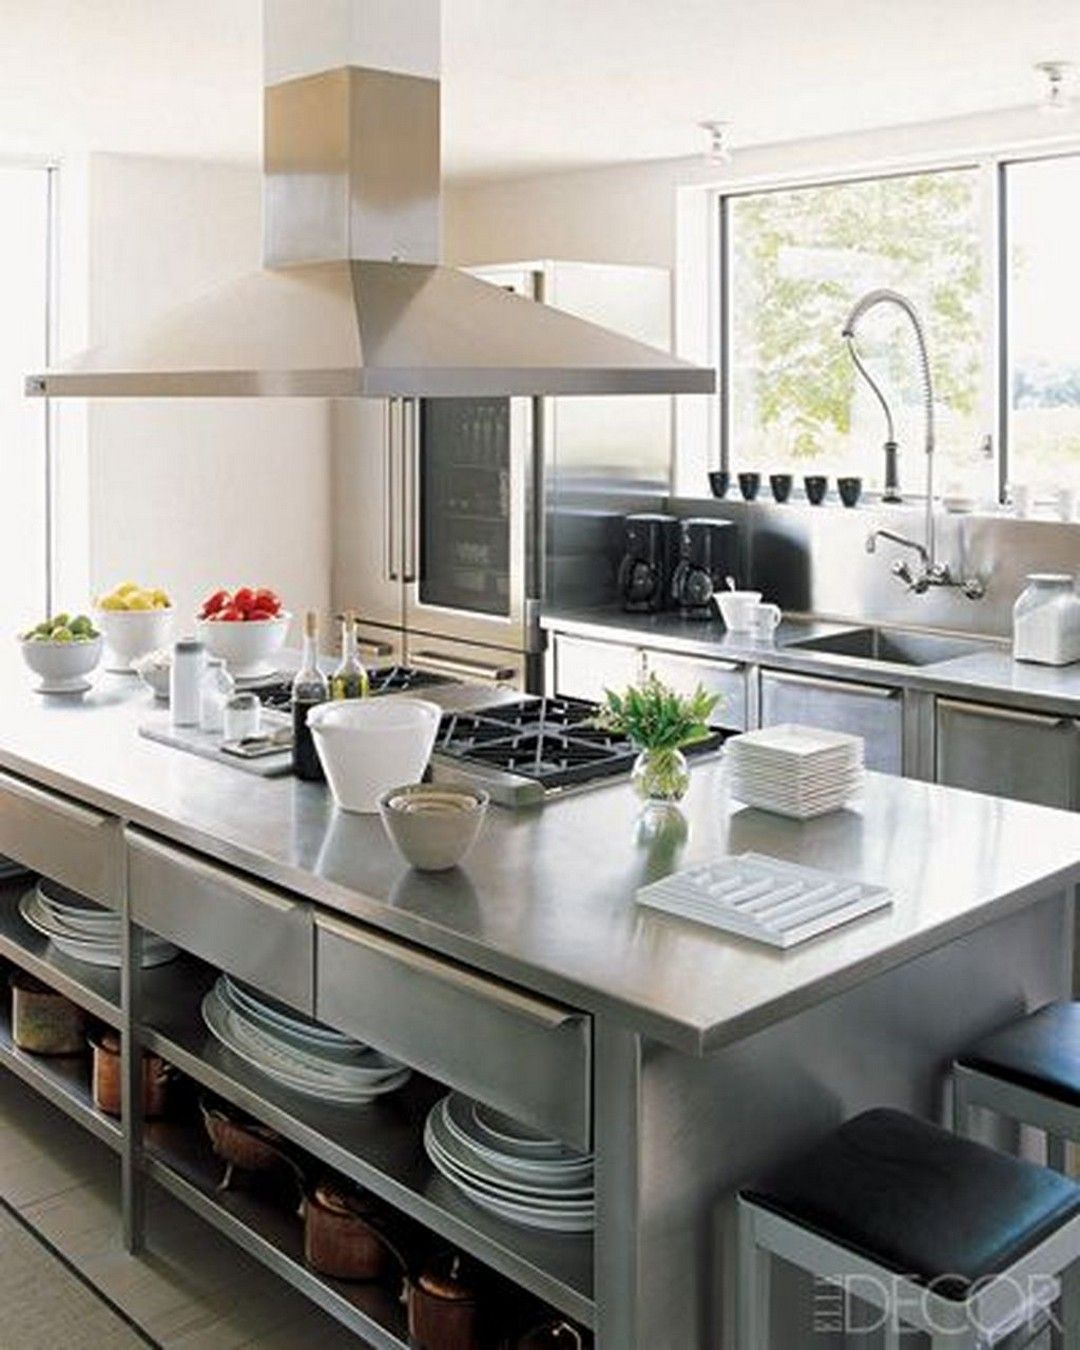 Unique Double Stainless Steel Kitchen Island In 2020 Industrial Kitchen Design Industrial Style Kitchen Stainless Steel Kitchen Island